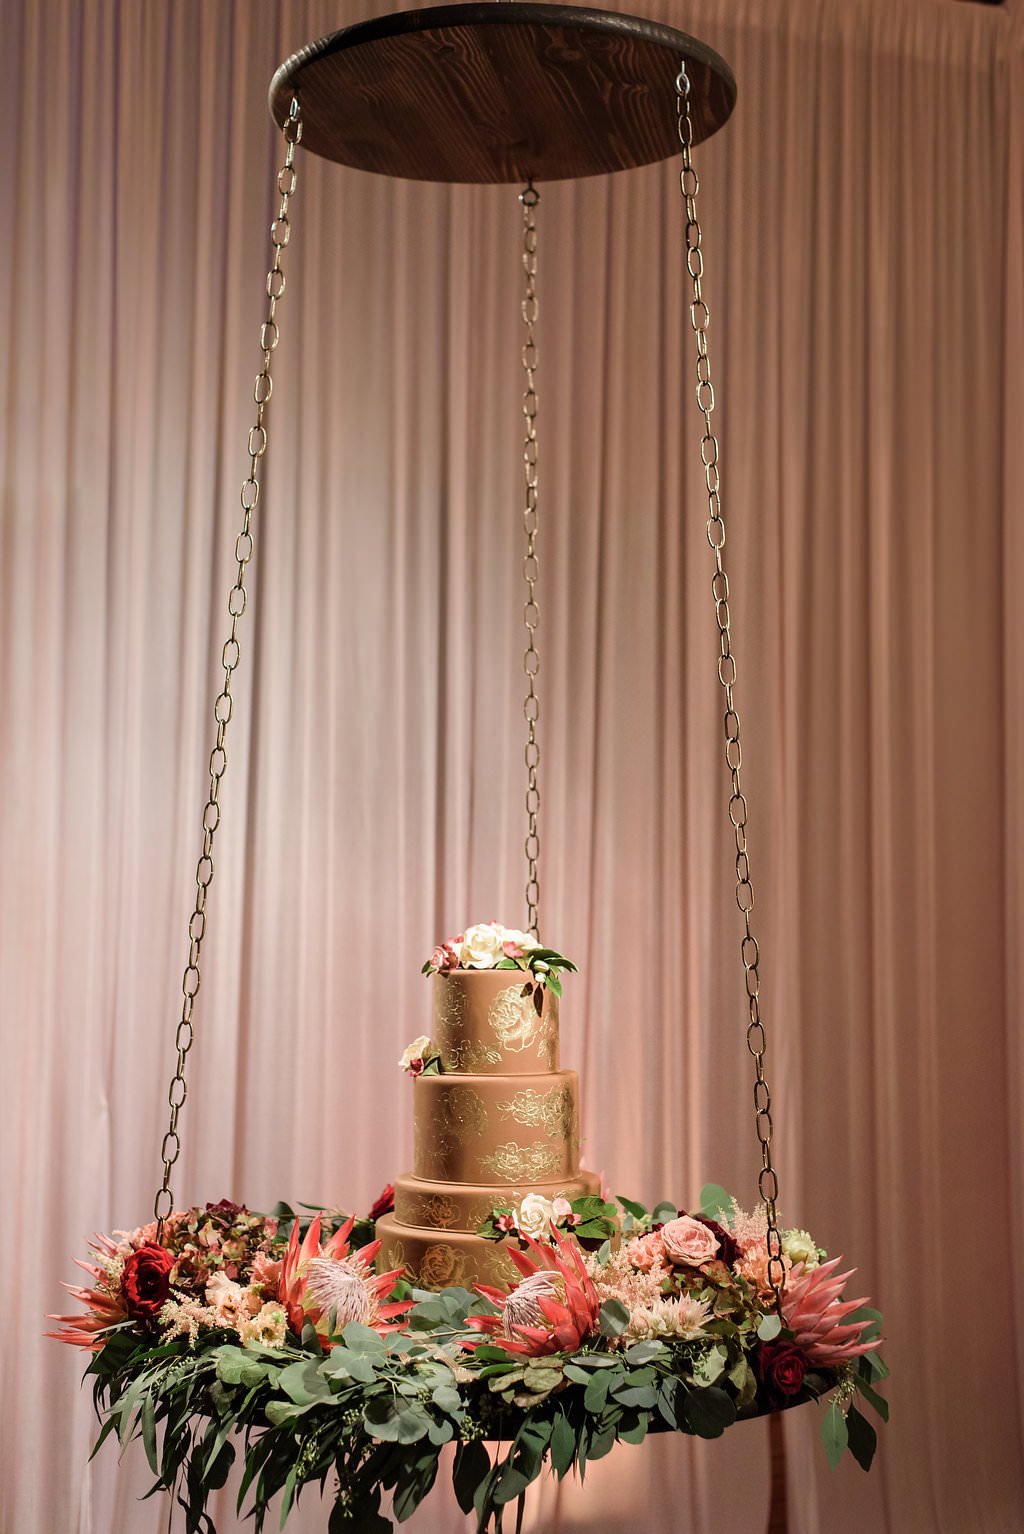 Four Tiered Round Copper and Gold Wedding Cake with Marsala Red Protea, Blush PInk and Cream Florals with Greenery, on Round Wooden Suspended Platform Table Hanging from Chains   Tampa Bay Wedding Planner NK Productions